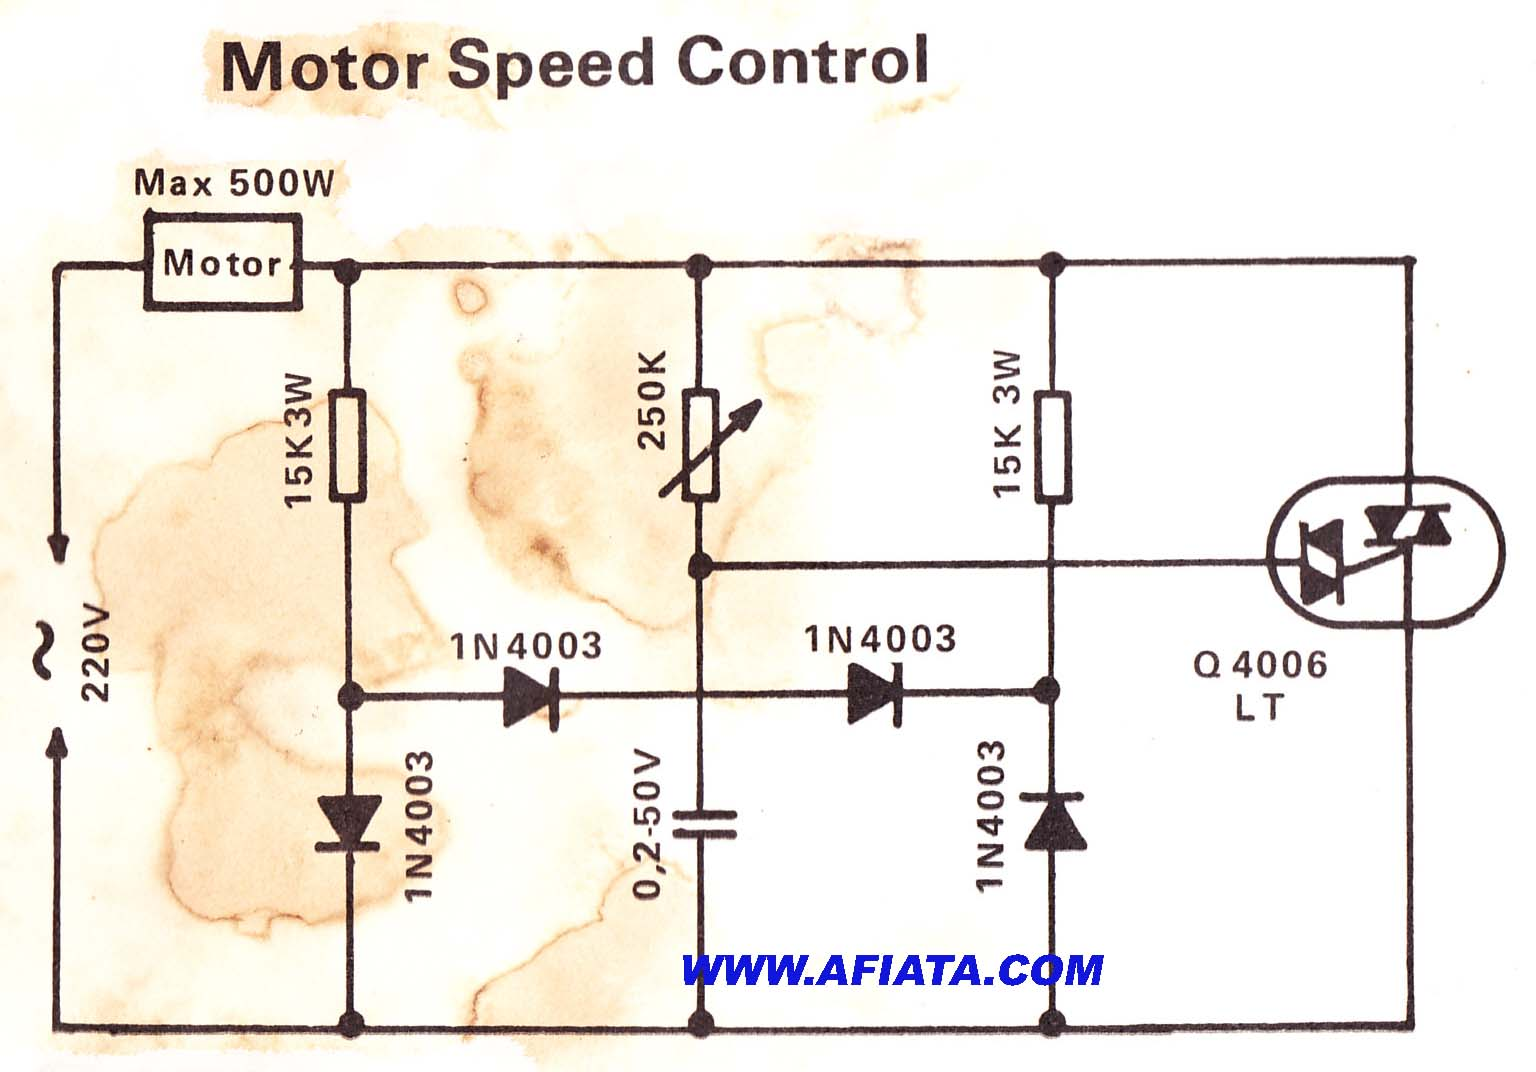 Ac motor circuit ac motor kit picture for Speed control of ac motor